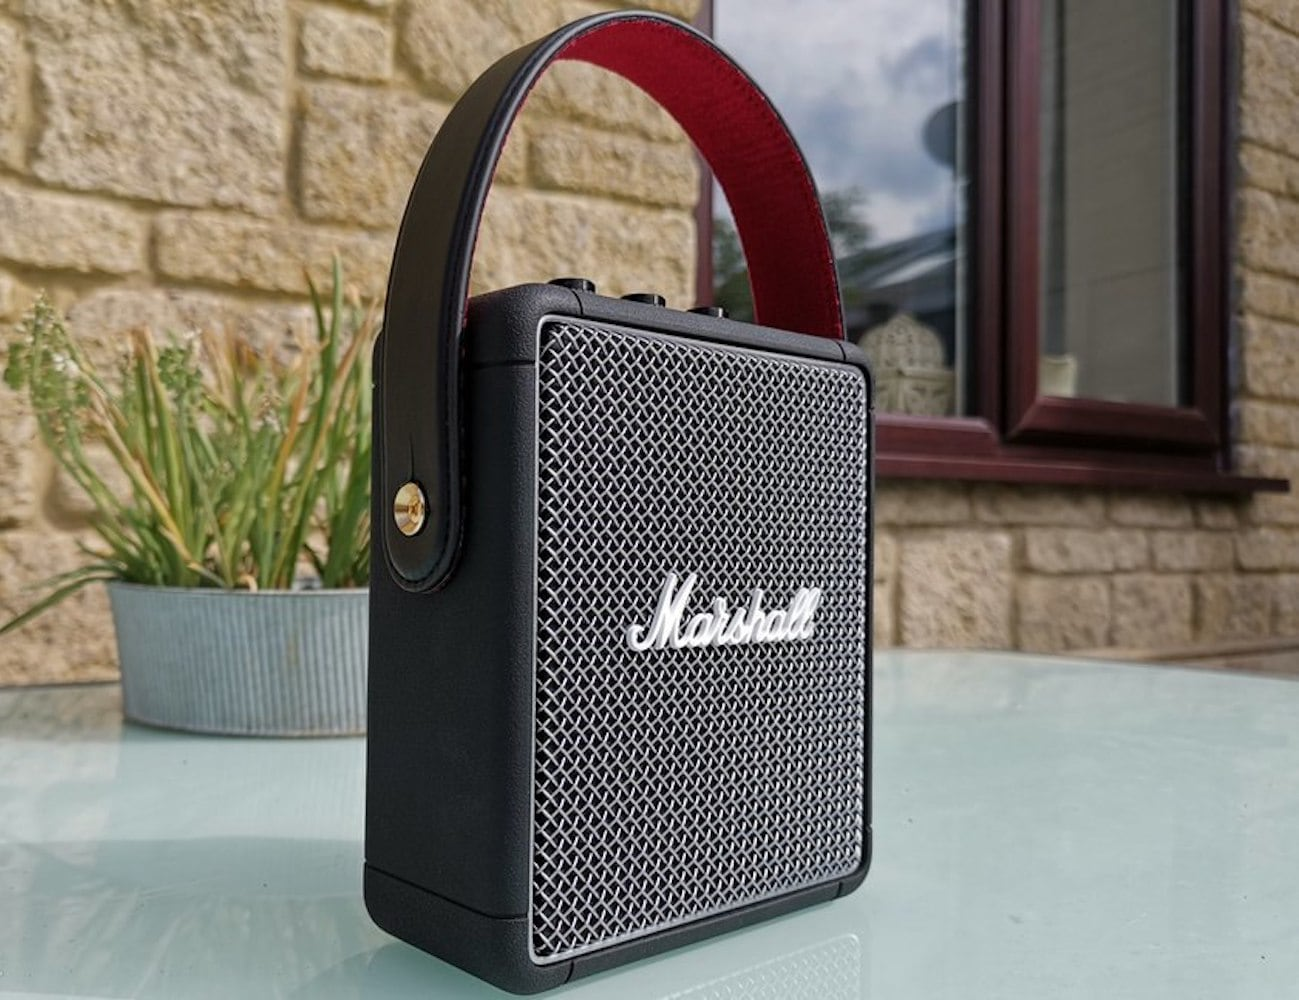 Marshall Stockwell II Lightweight Compact Portable Speaker provides immersive sound